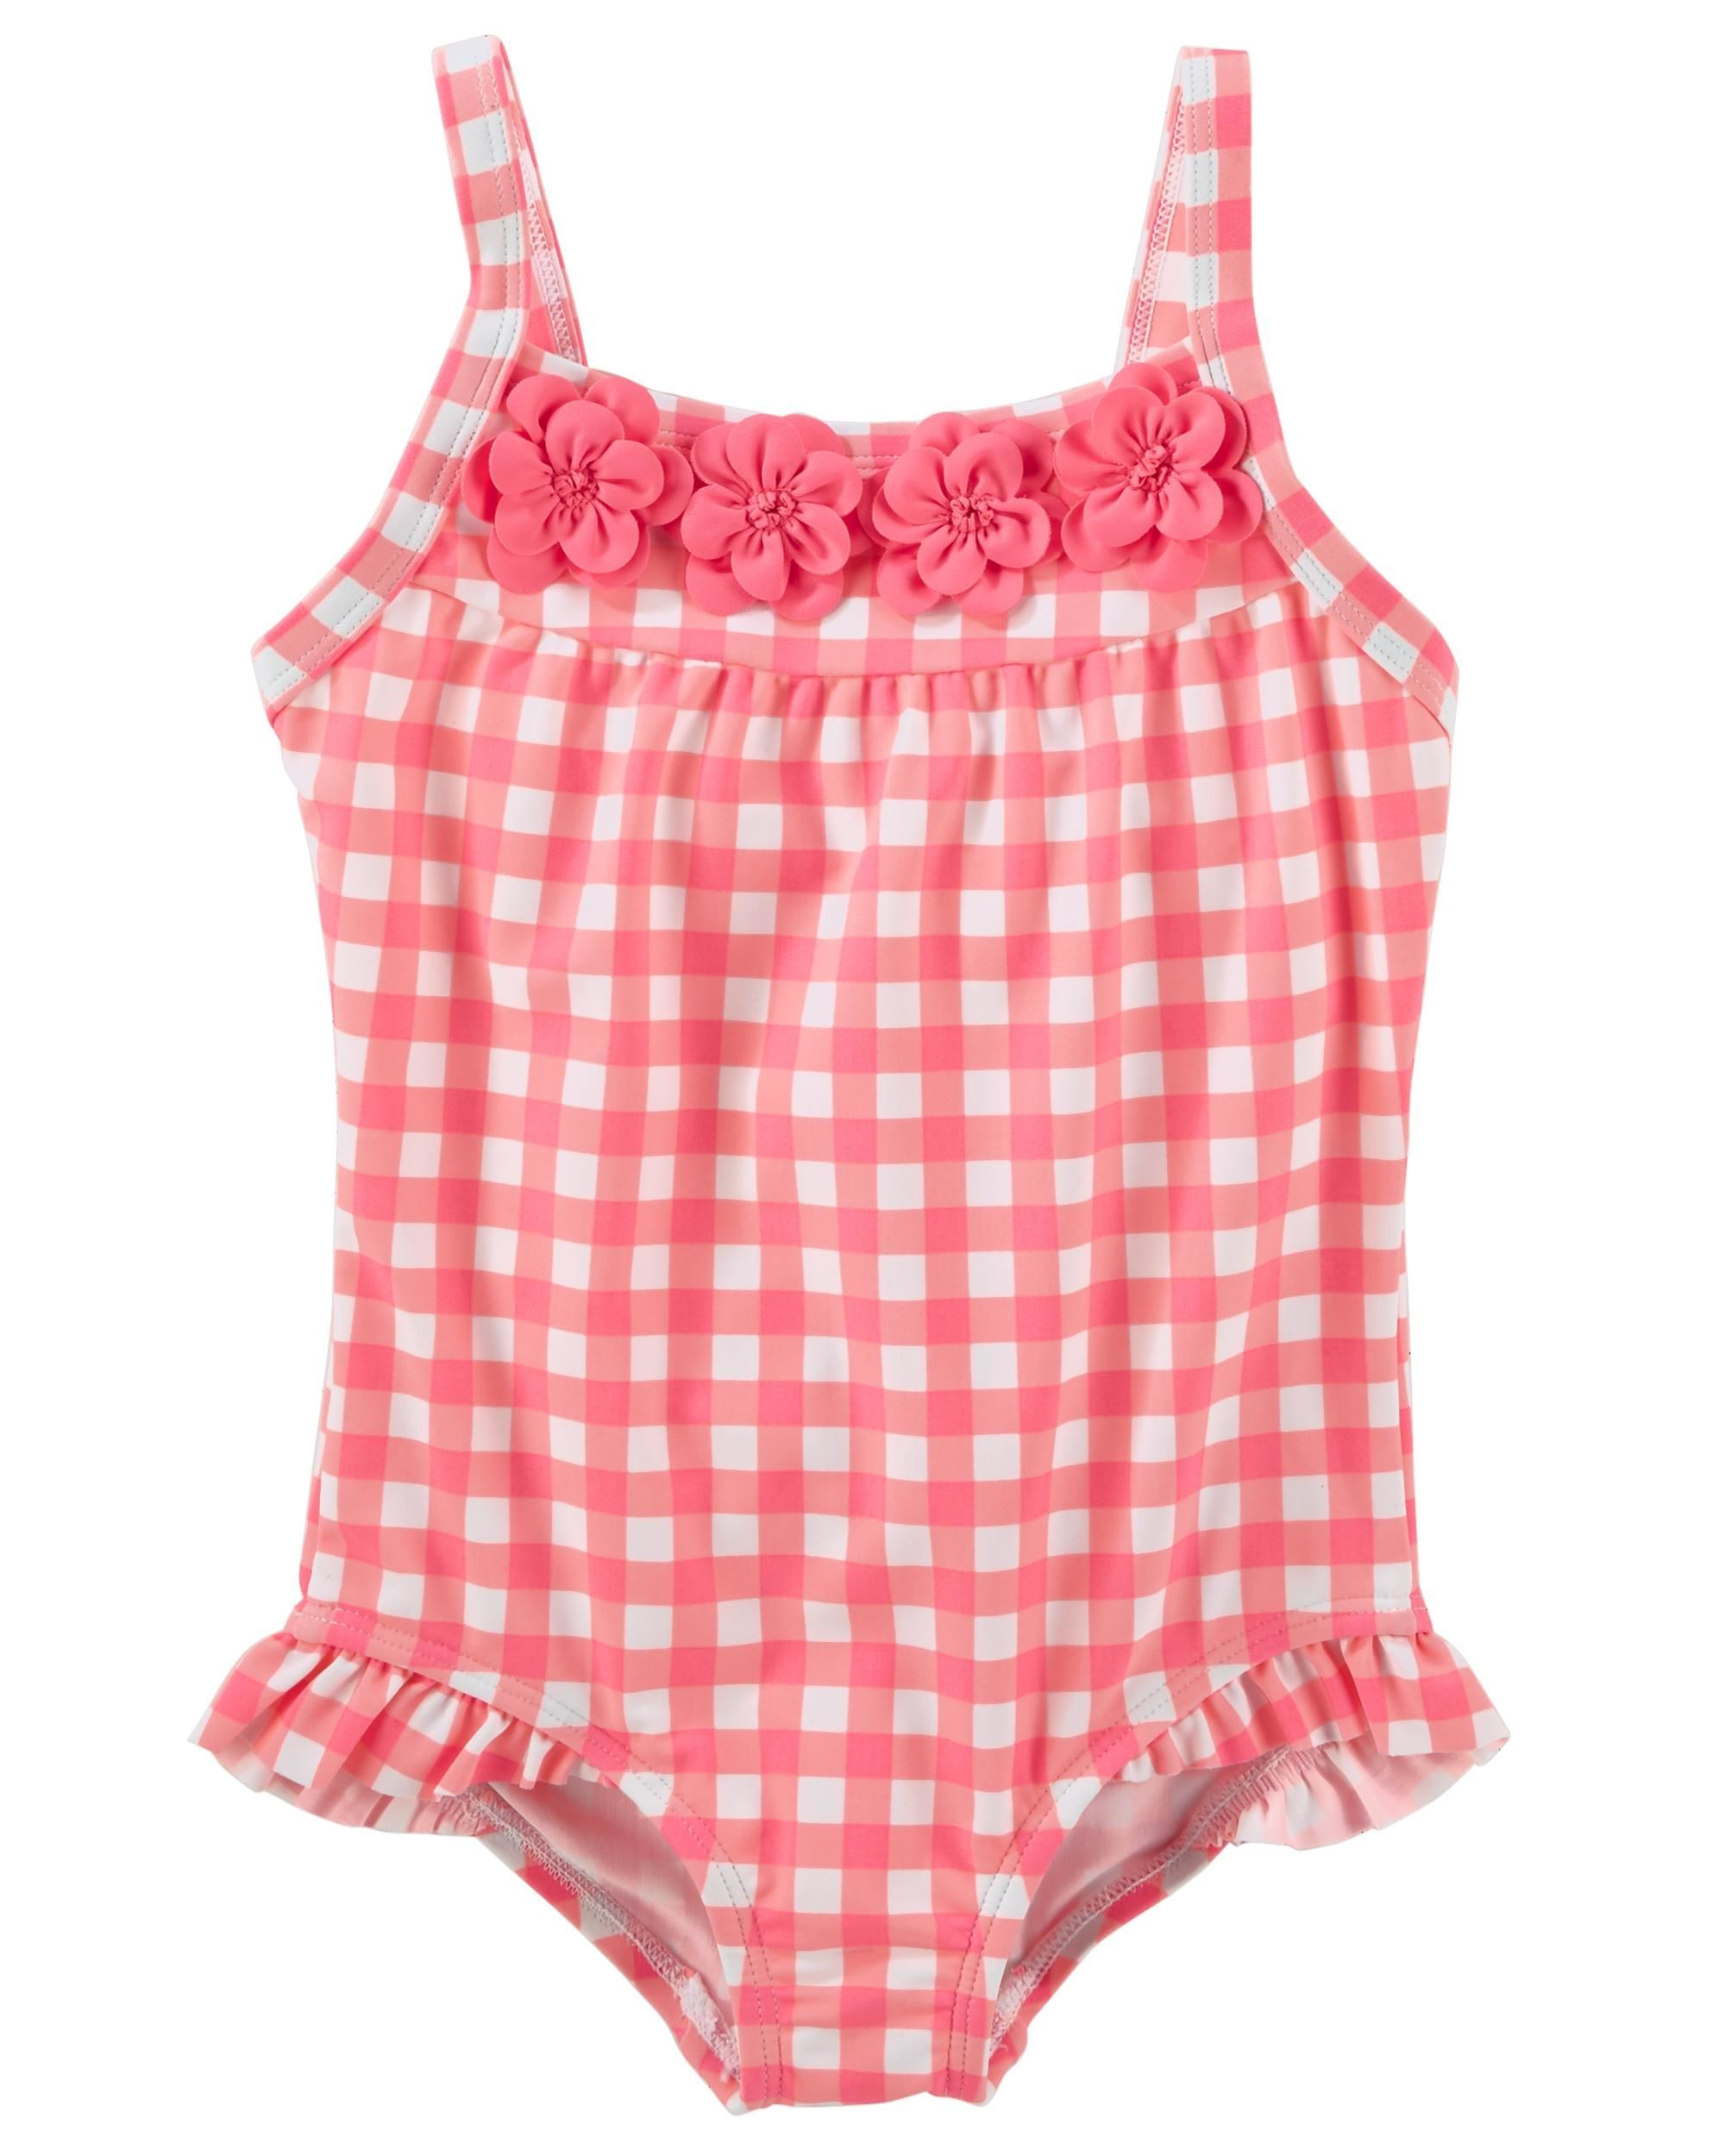 c66f25df14 She'll be pretty in gingham in this super sweet one piece! With UPF 50+ sun  protection, this bathing suit features ruffles at the legs and placed 3D  floral ...